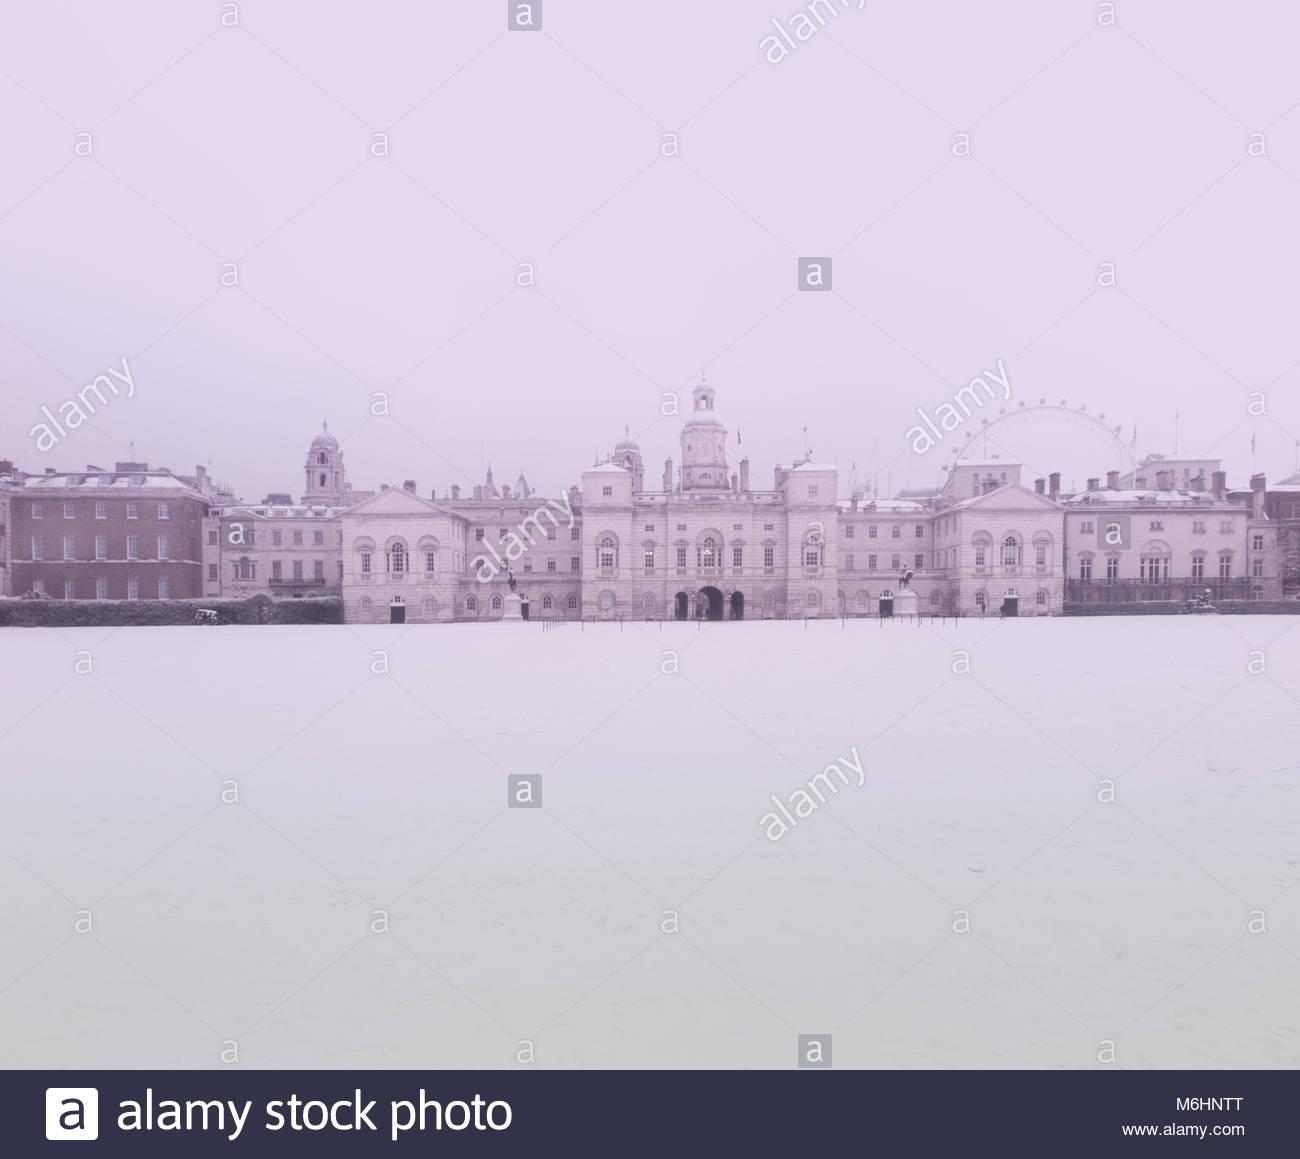 Horseguard's Parade and the London Eye covered in snow in winter - Stock Image